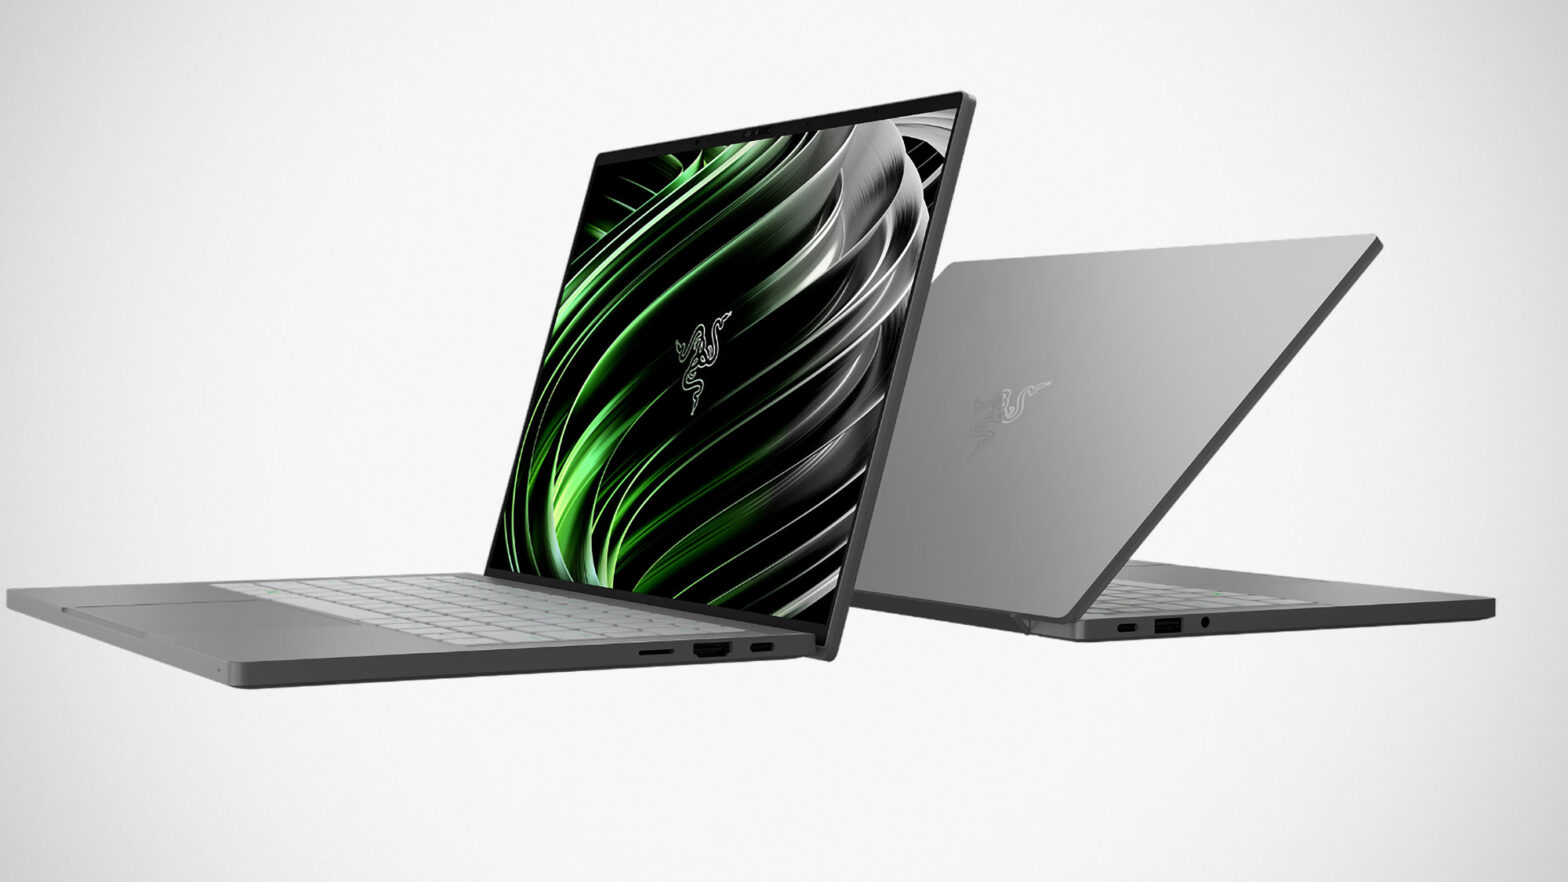 2020 Razer Book 13 Laptop